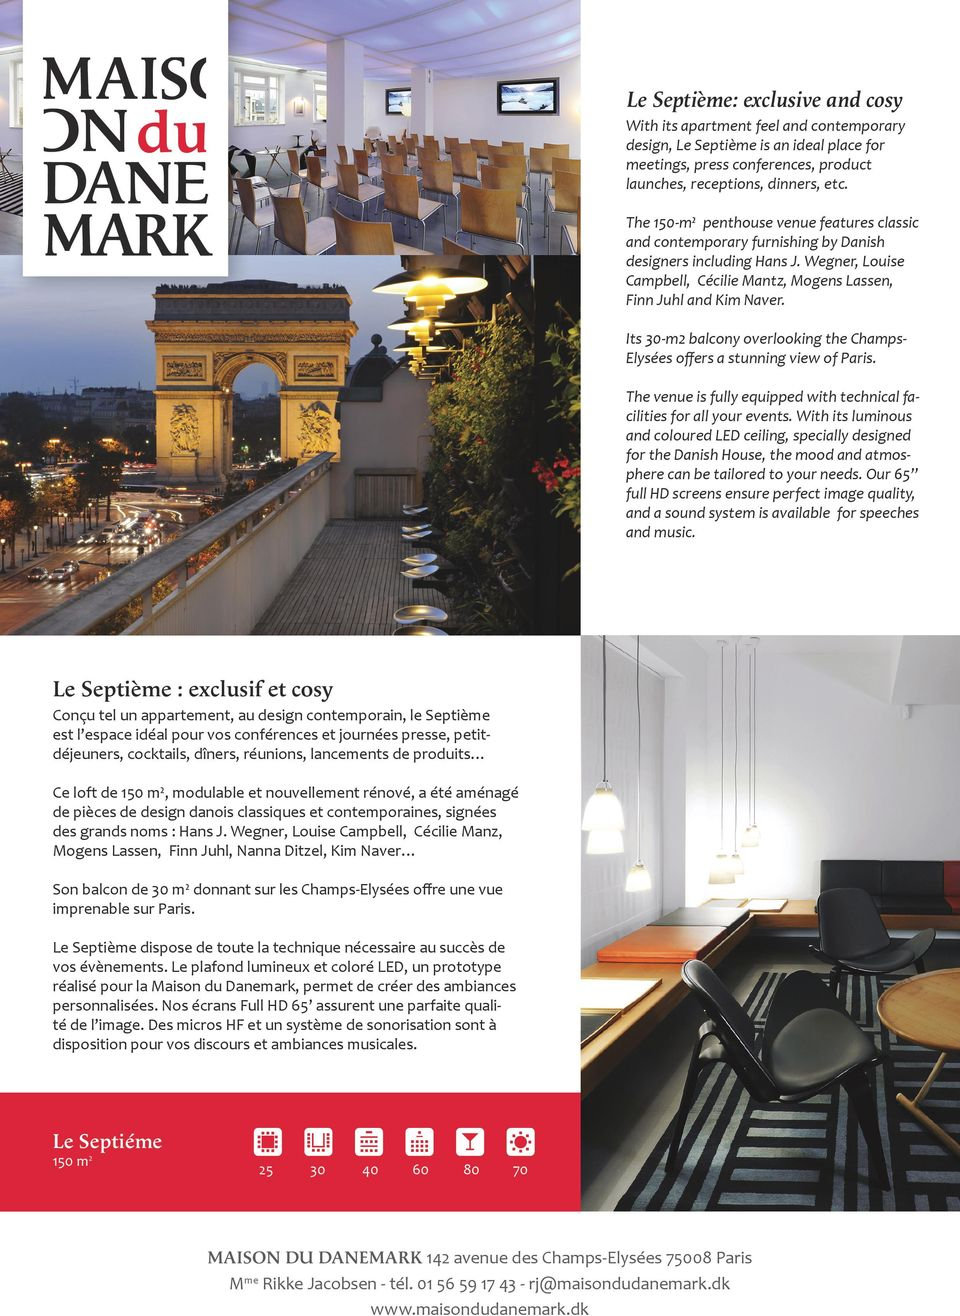 Its 30m2 balcony overlooking the ChampsElysées offers a stunning view of Paris. The venue is fully equipped with technical facilities for all your events.